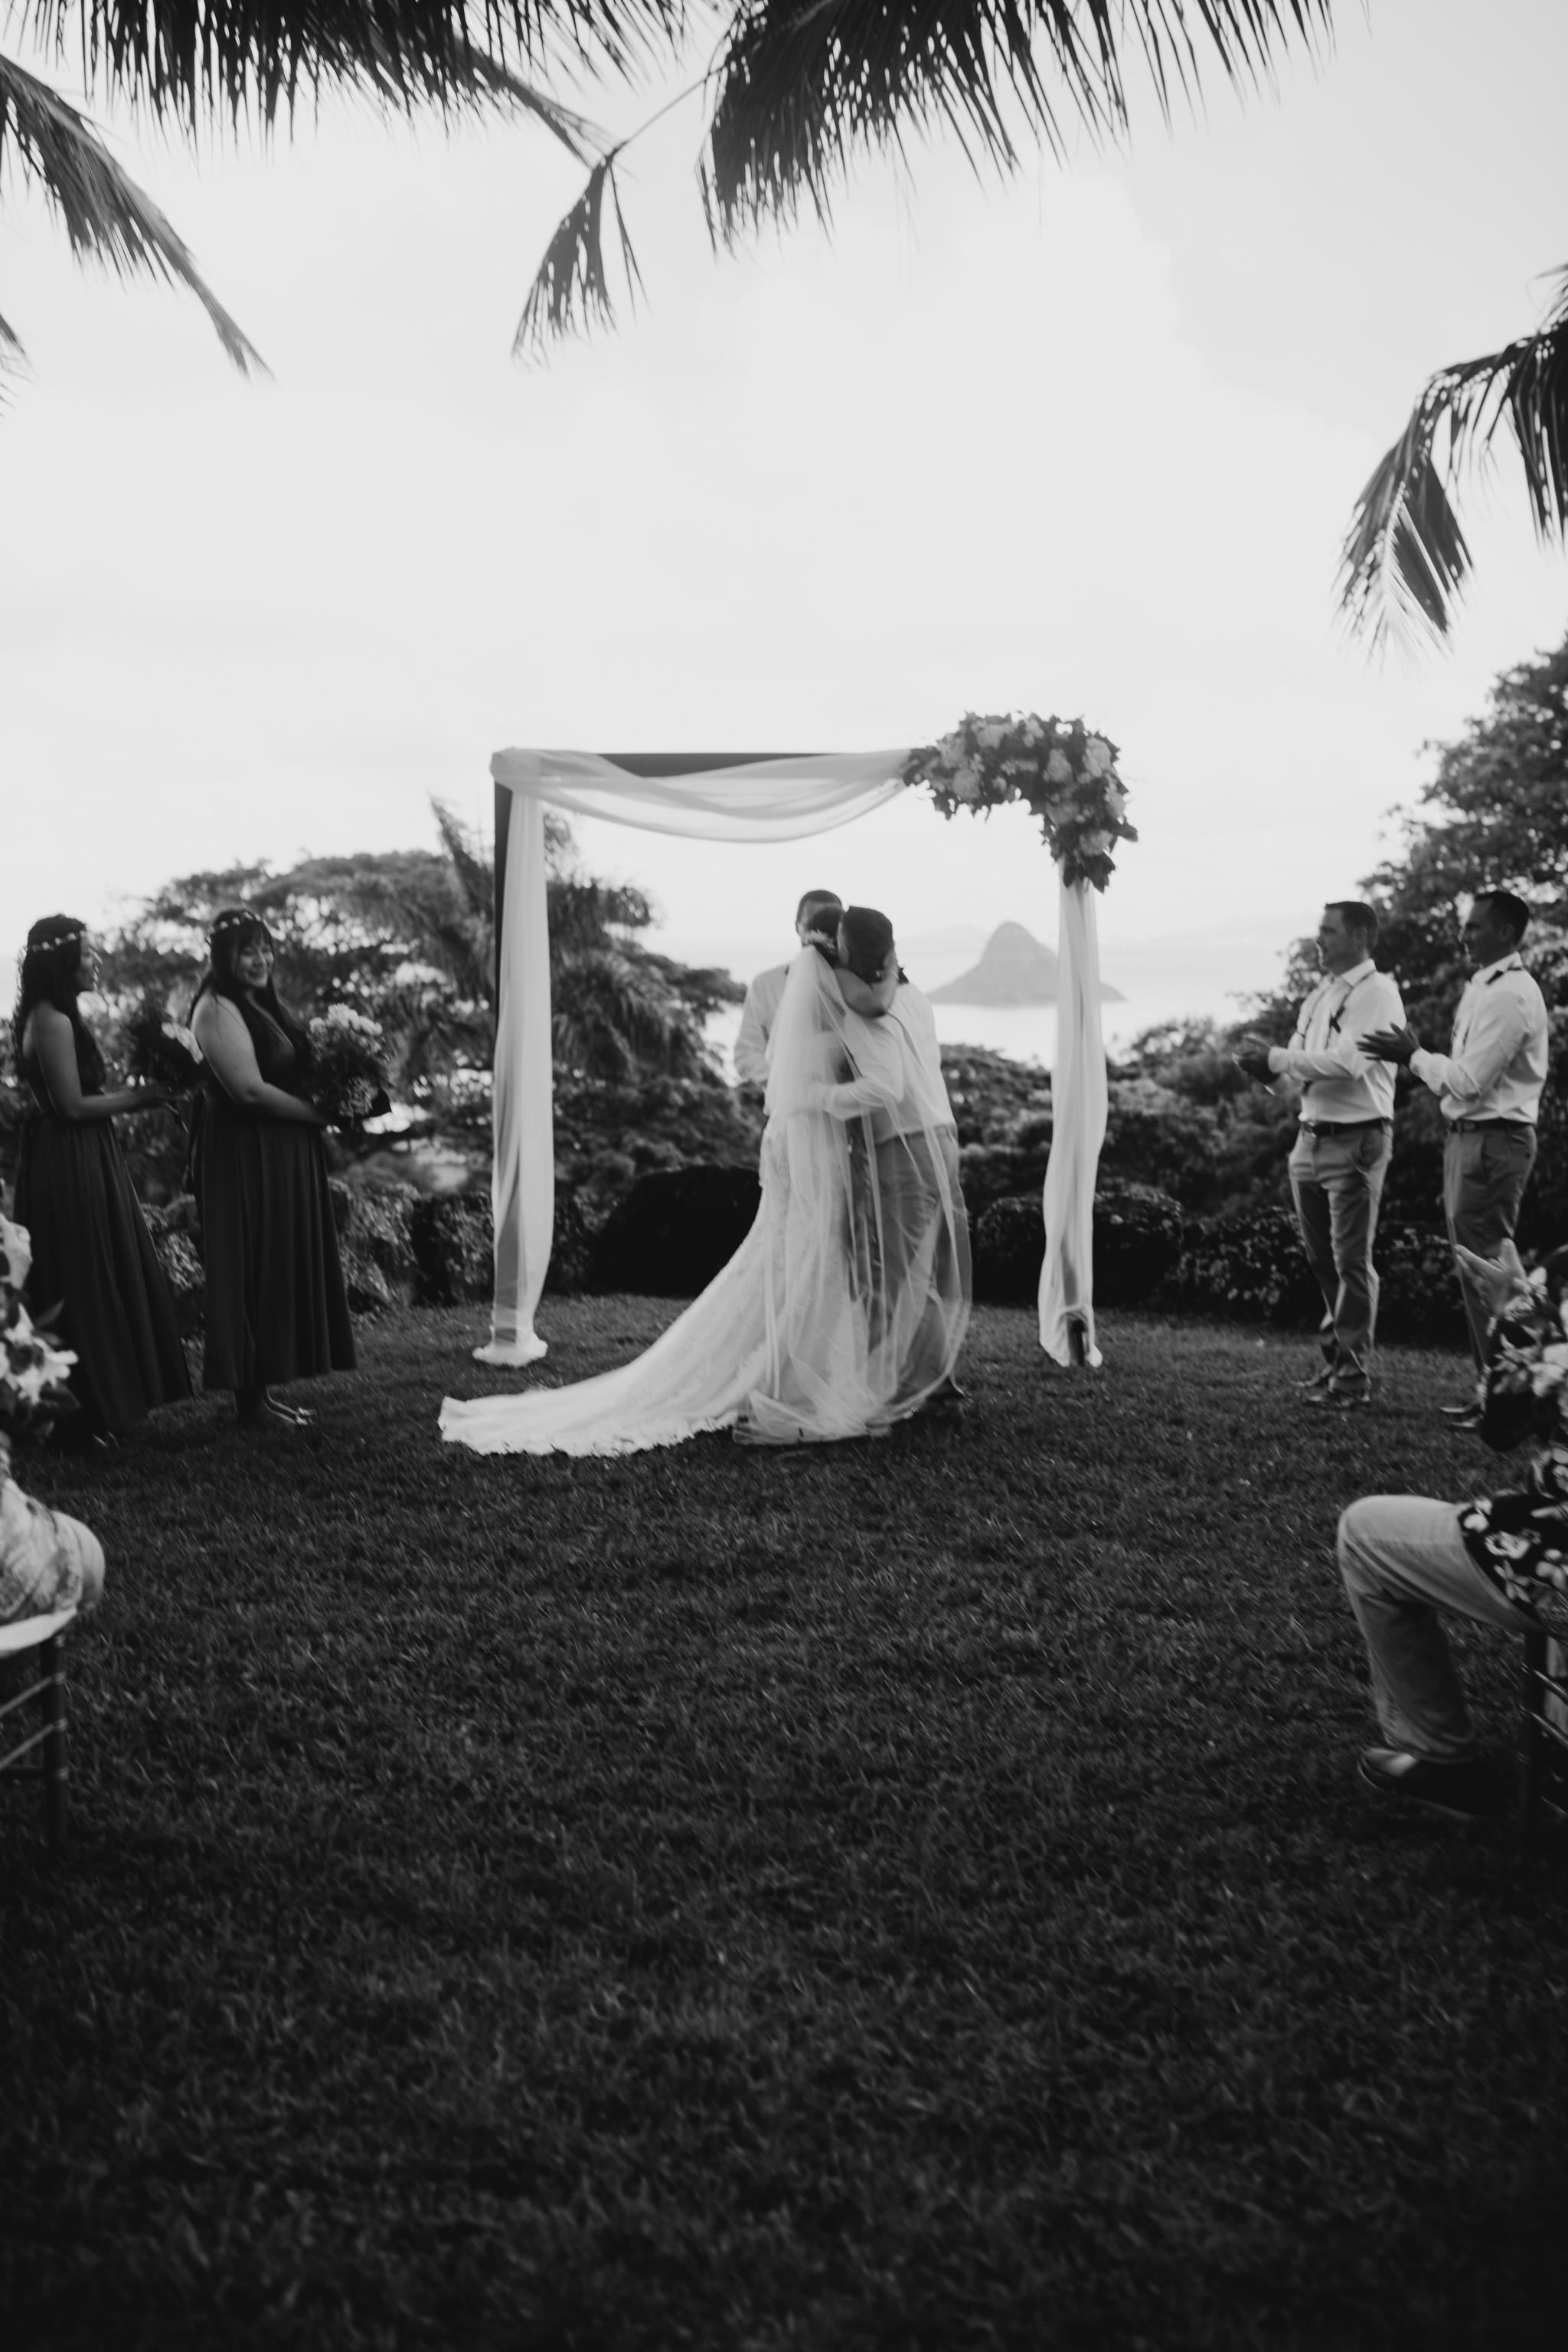 Kualoa Ranch Paliku Gardens Wedding. Photography by Hawaii wedding photographer Desiree Leilani